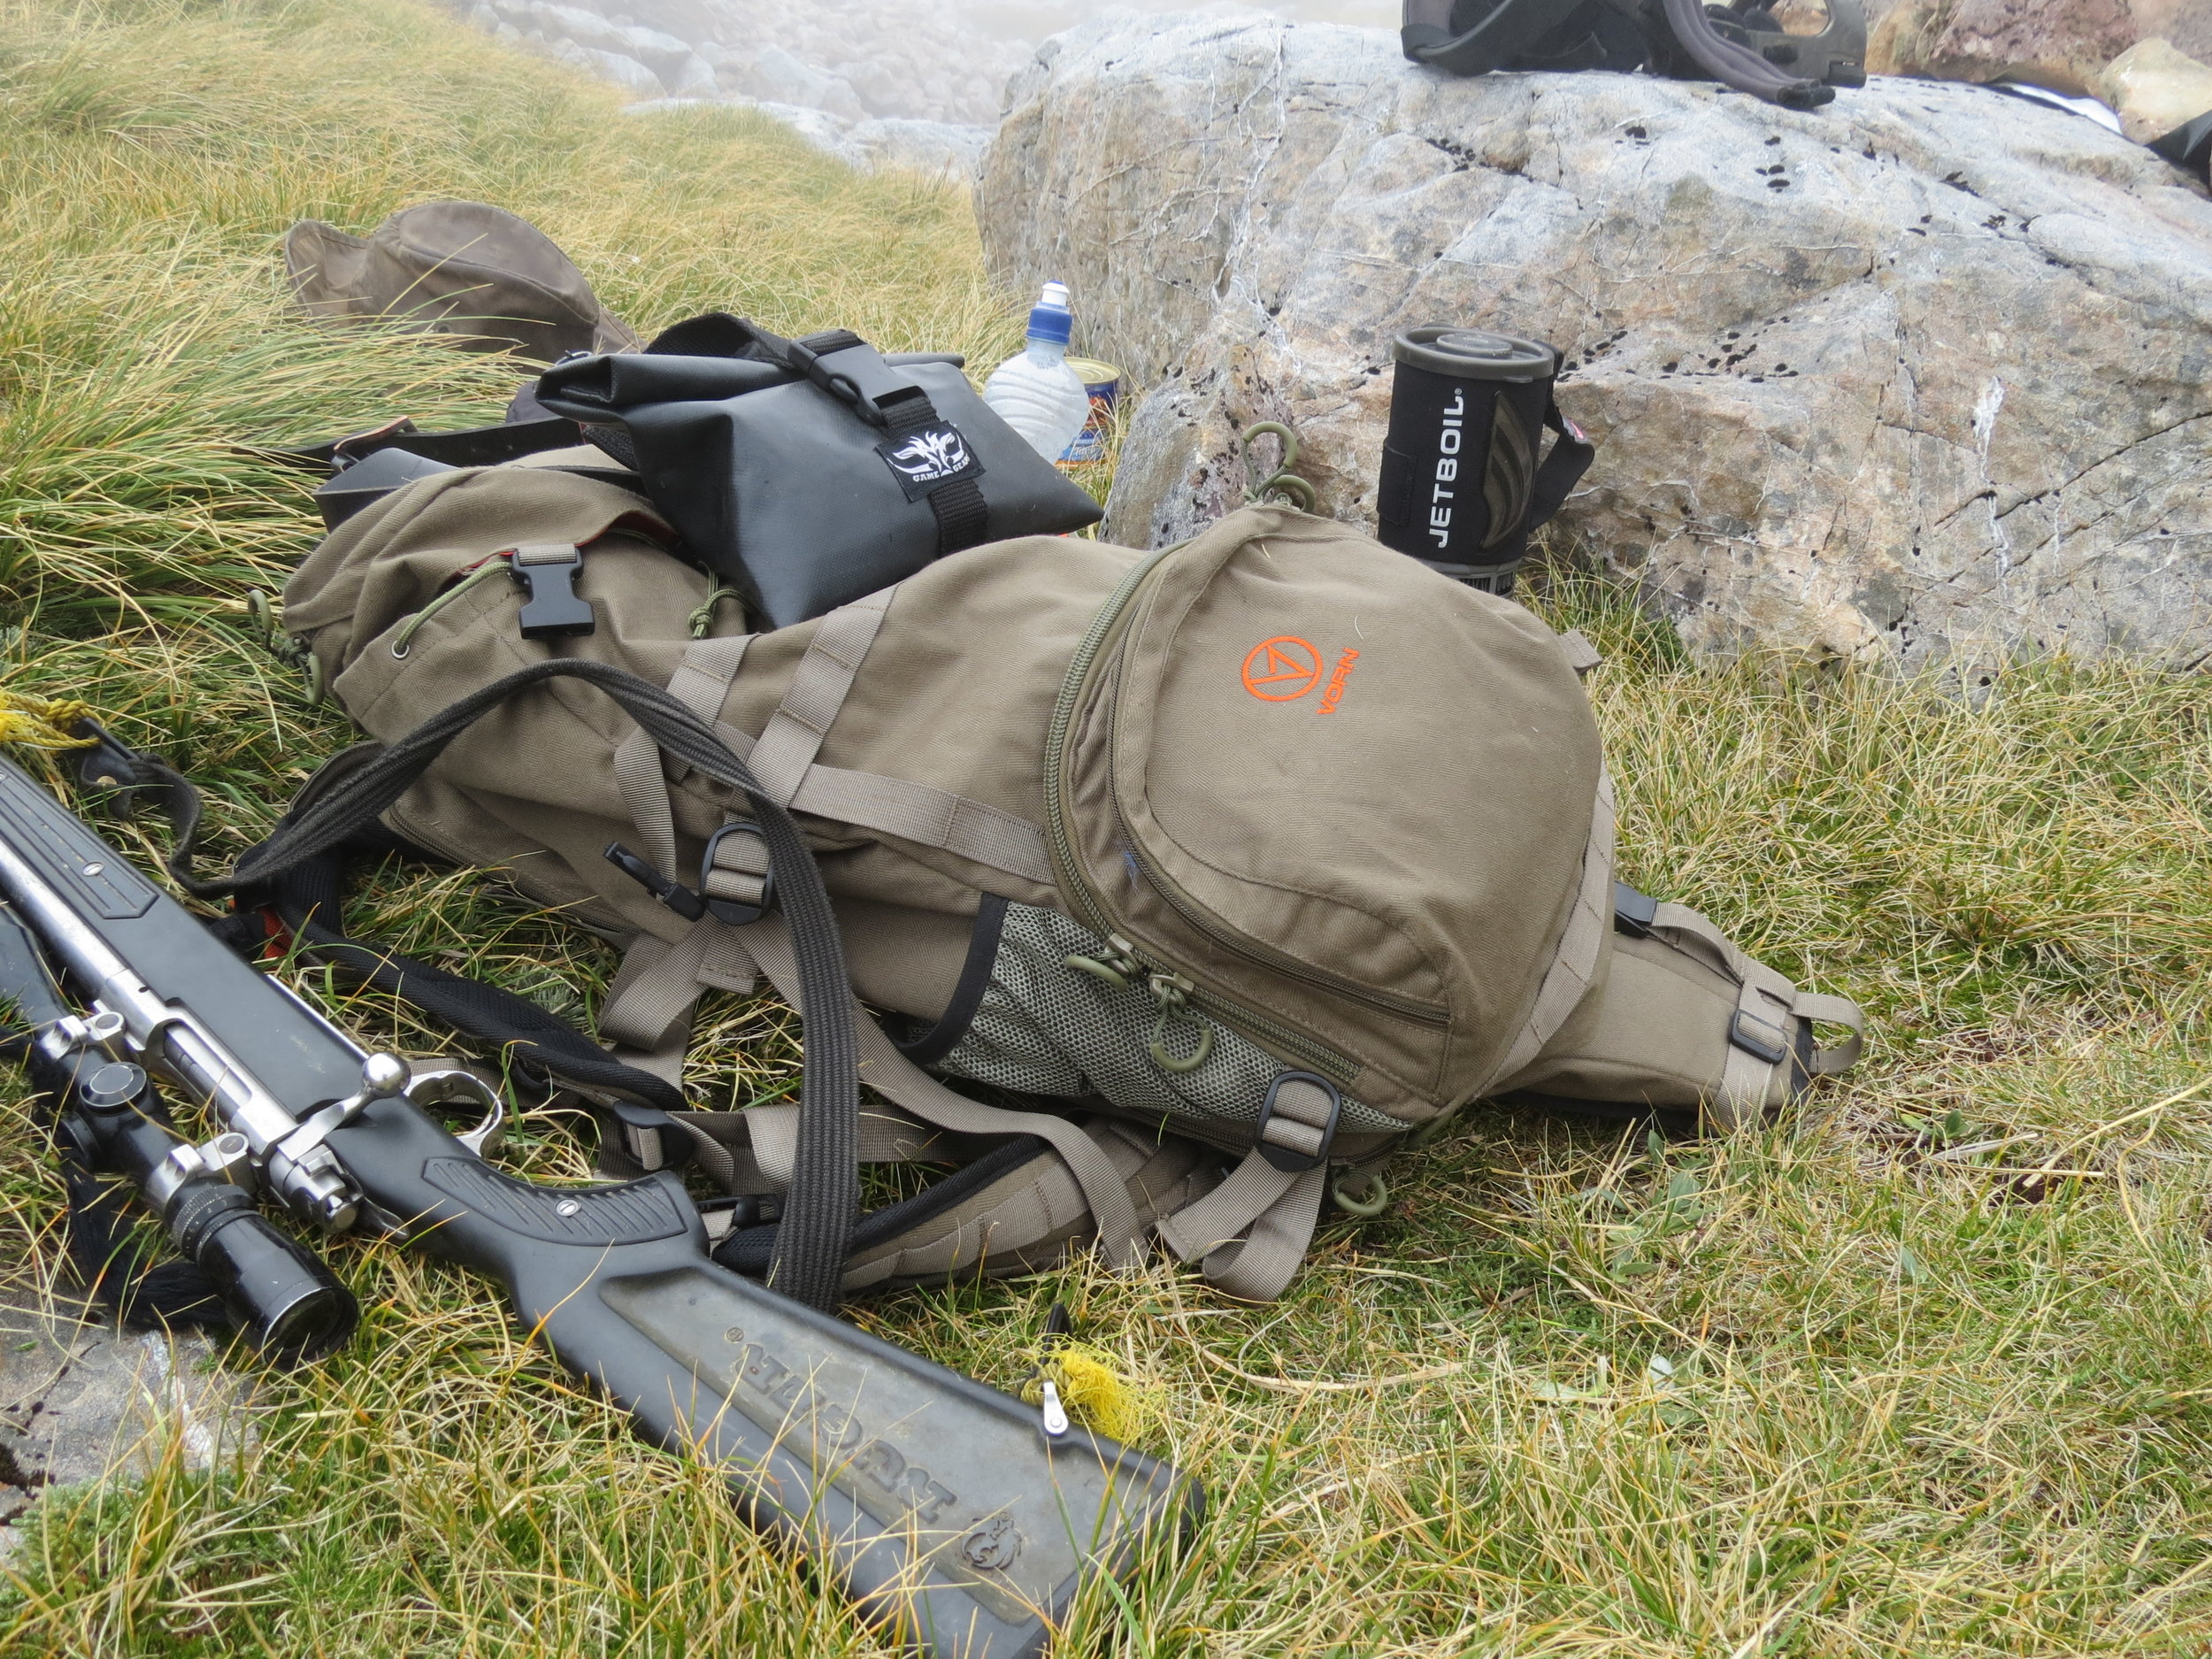 A pack with built in rifle scabbard makes life easier, plus a weather proof camera bag on your waist belt for quick access to your photo opportunities.